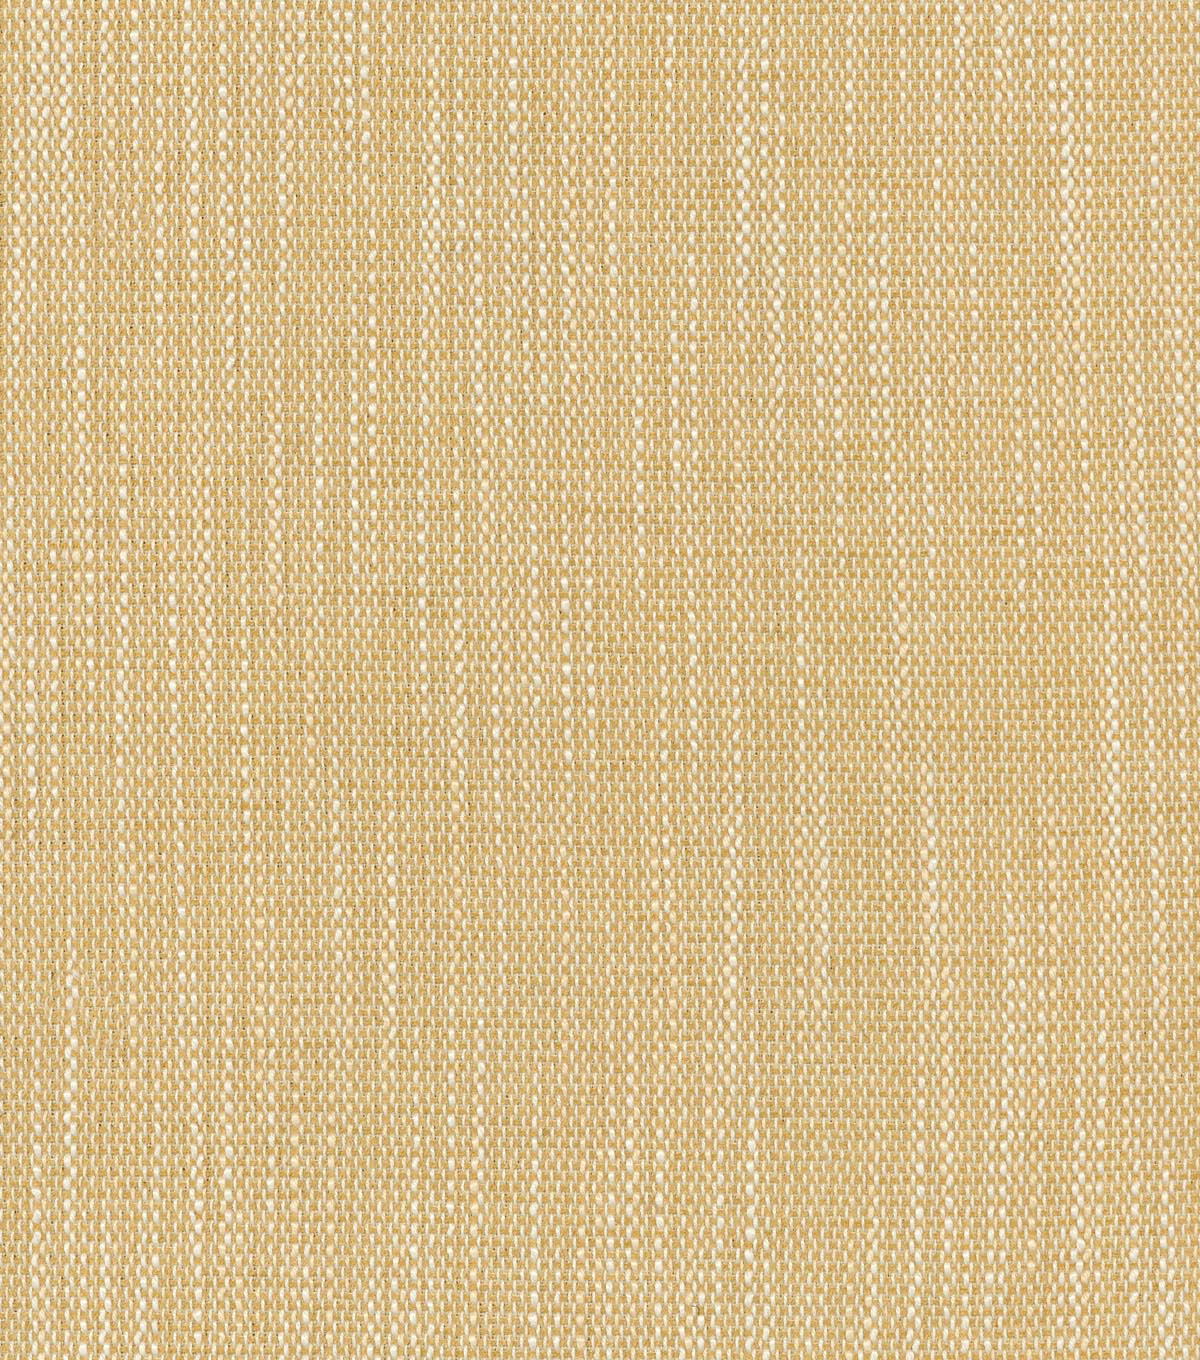 Home Decor 8\u0022x8\u0022 Swatch Fabric-Waverly Varick Cornsilk